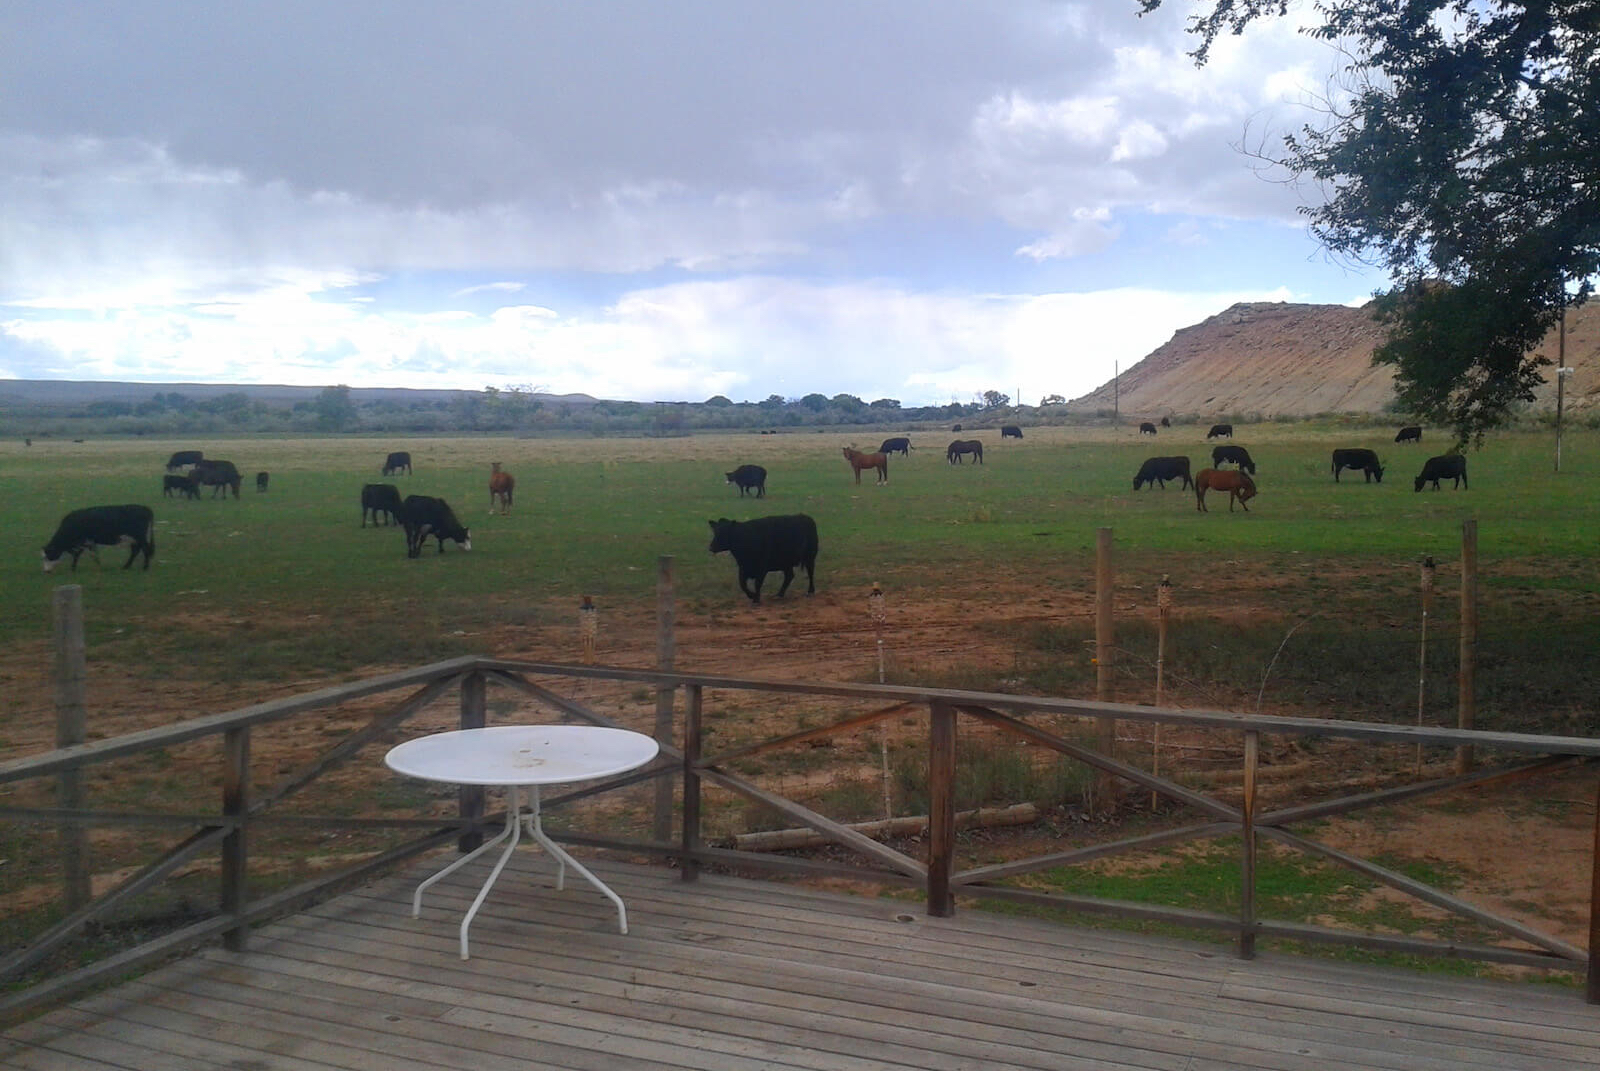 Grazing Cows at Homestead One